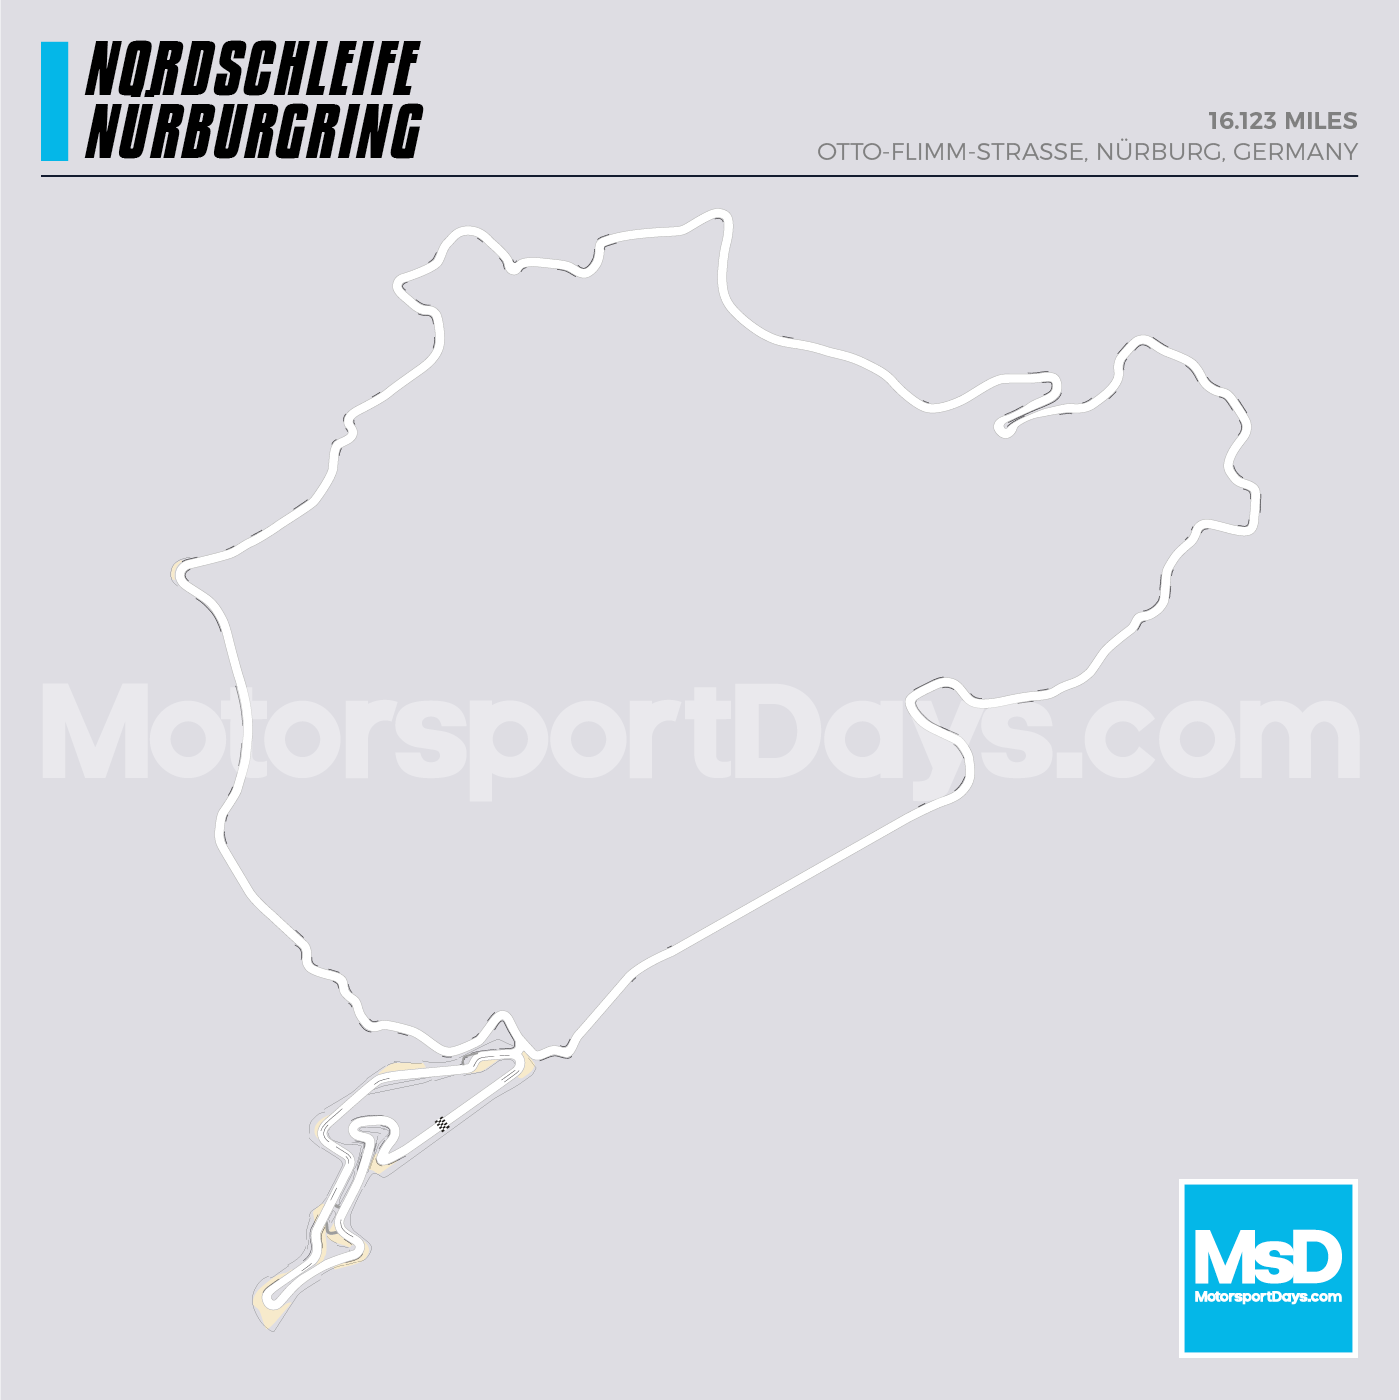 Nordschleife-Circuit-track-map